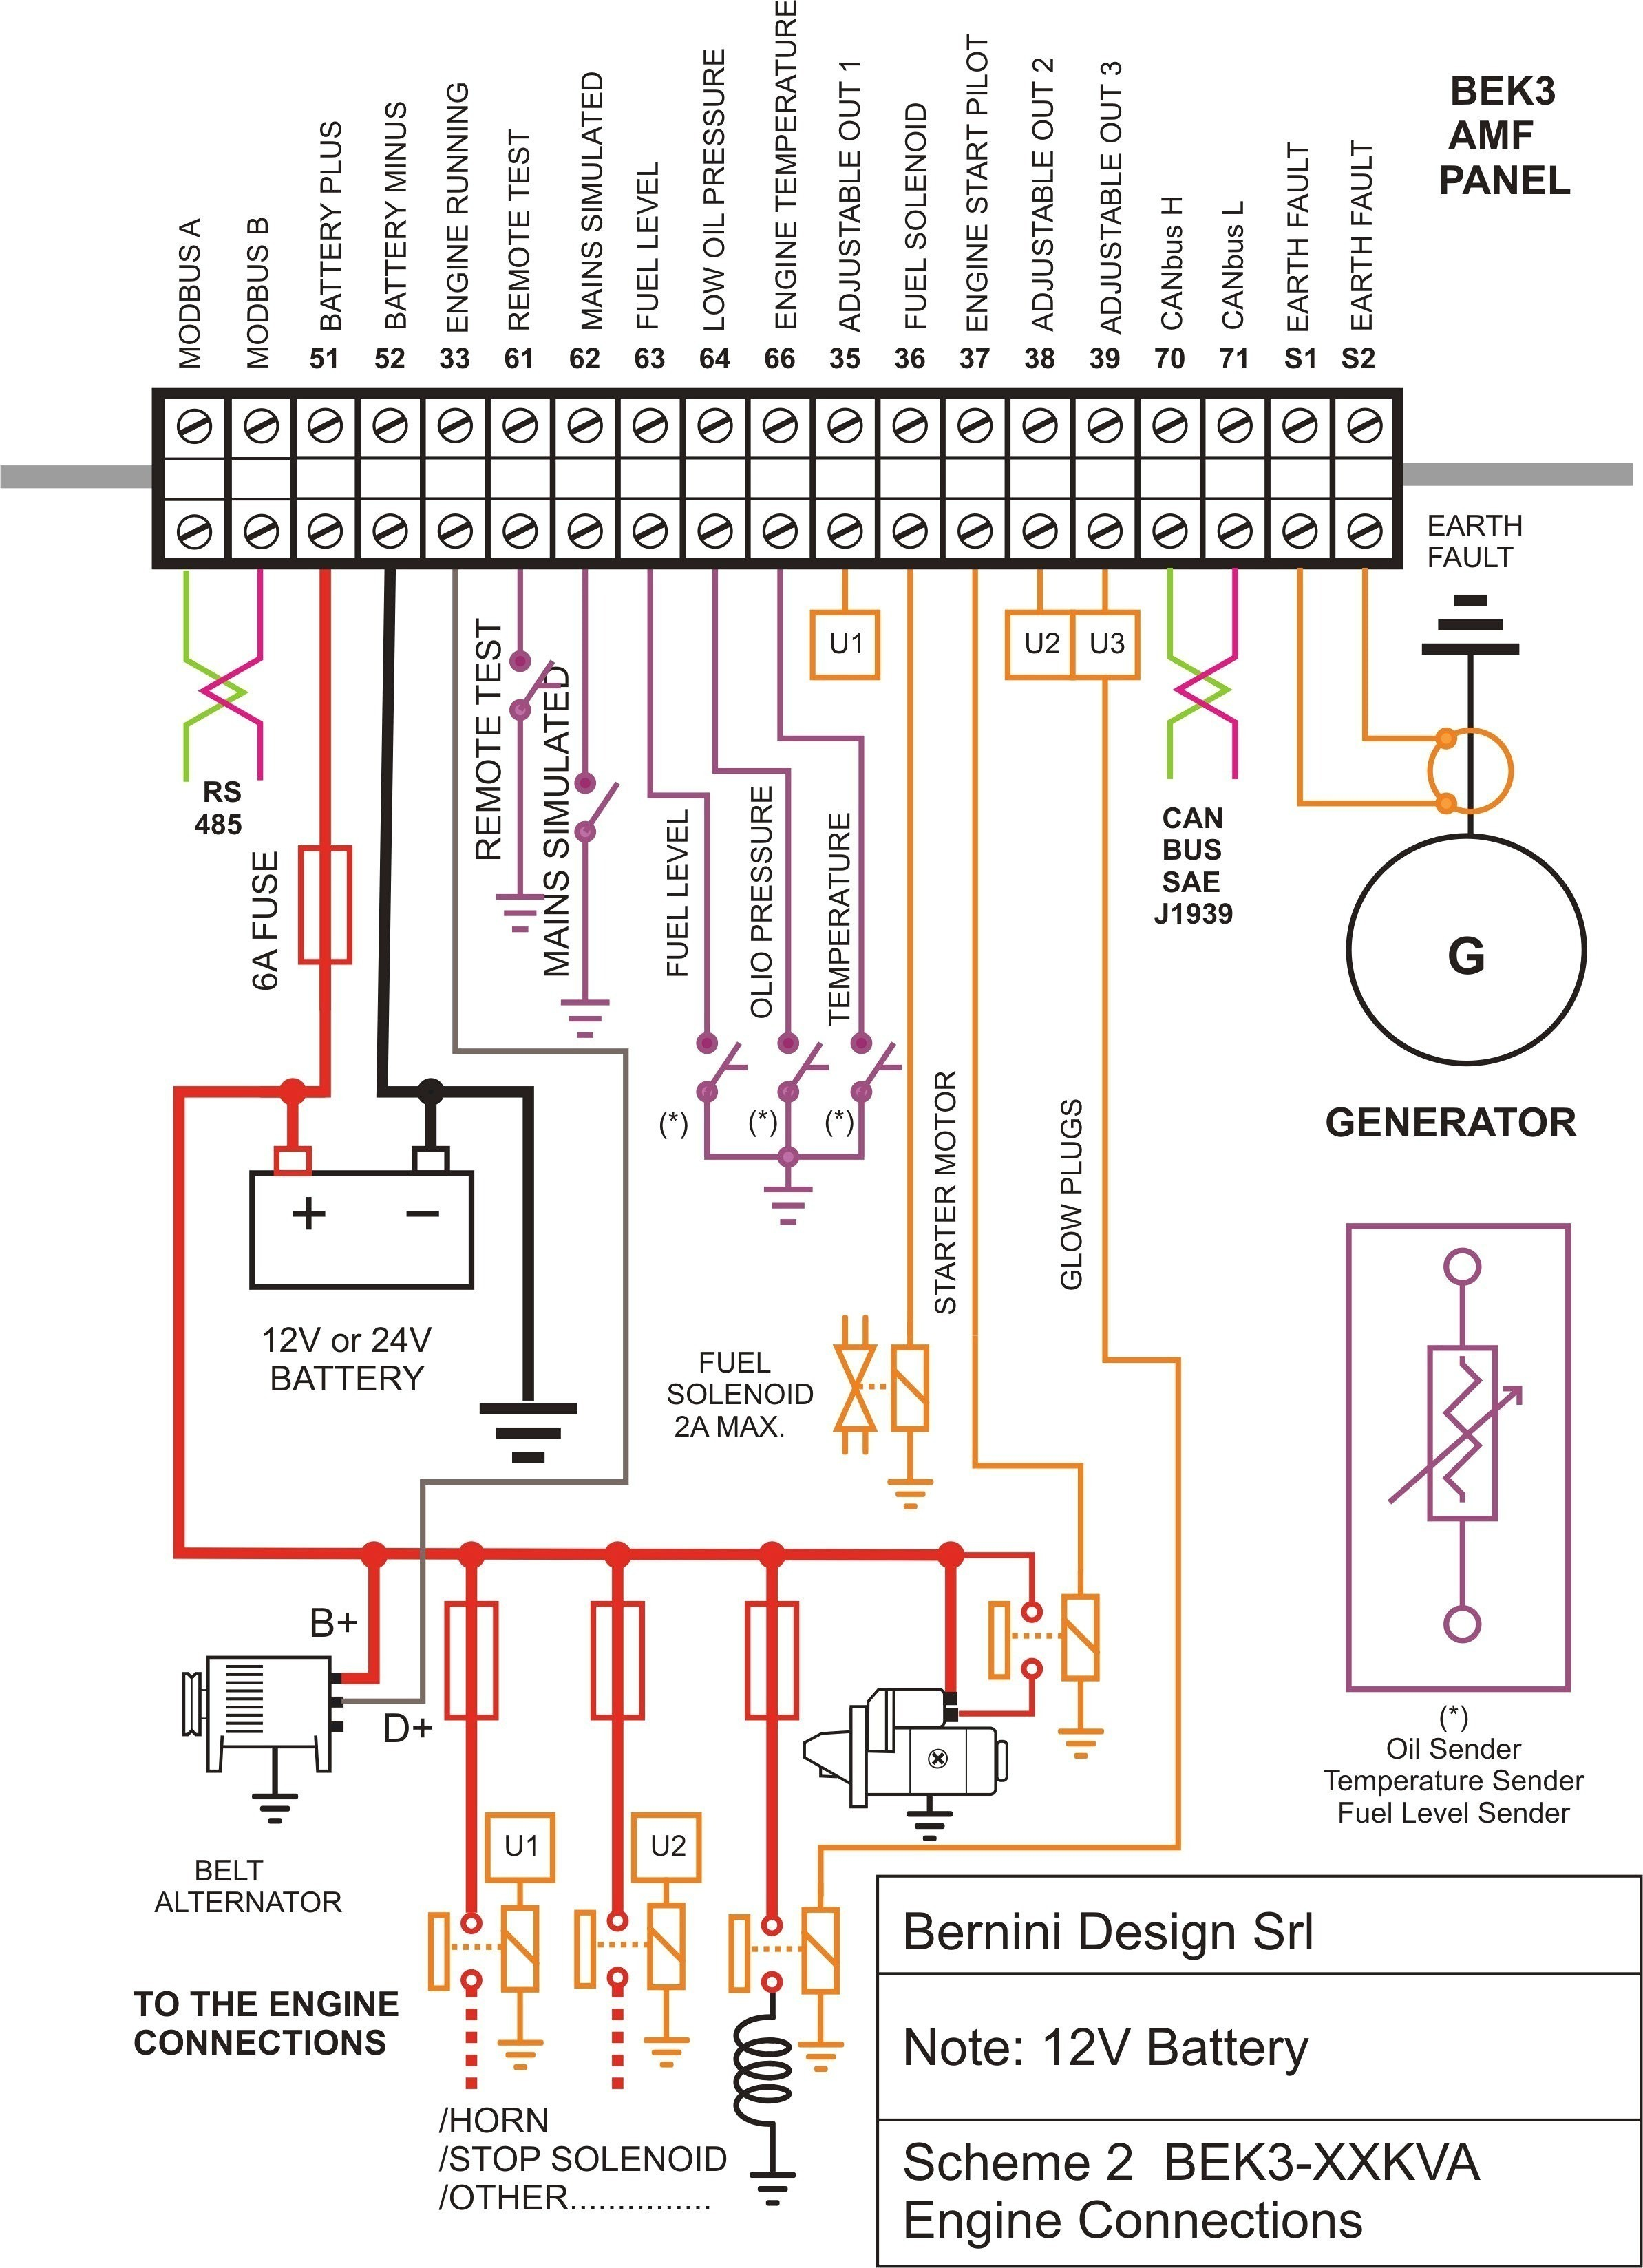 Home Electrical Wiring Diagrams Electrical Wiring Diagrams Best Electrical Diagram for House Of Home Electrical Wiring Diagrams Electrical Diagram for House originalstylophone